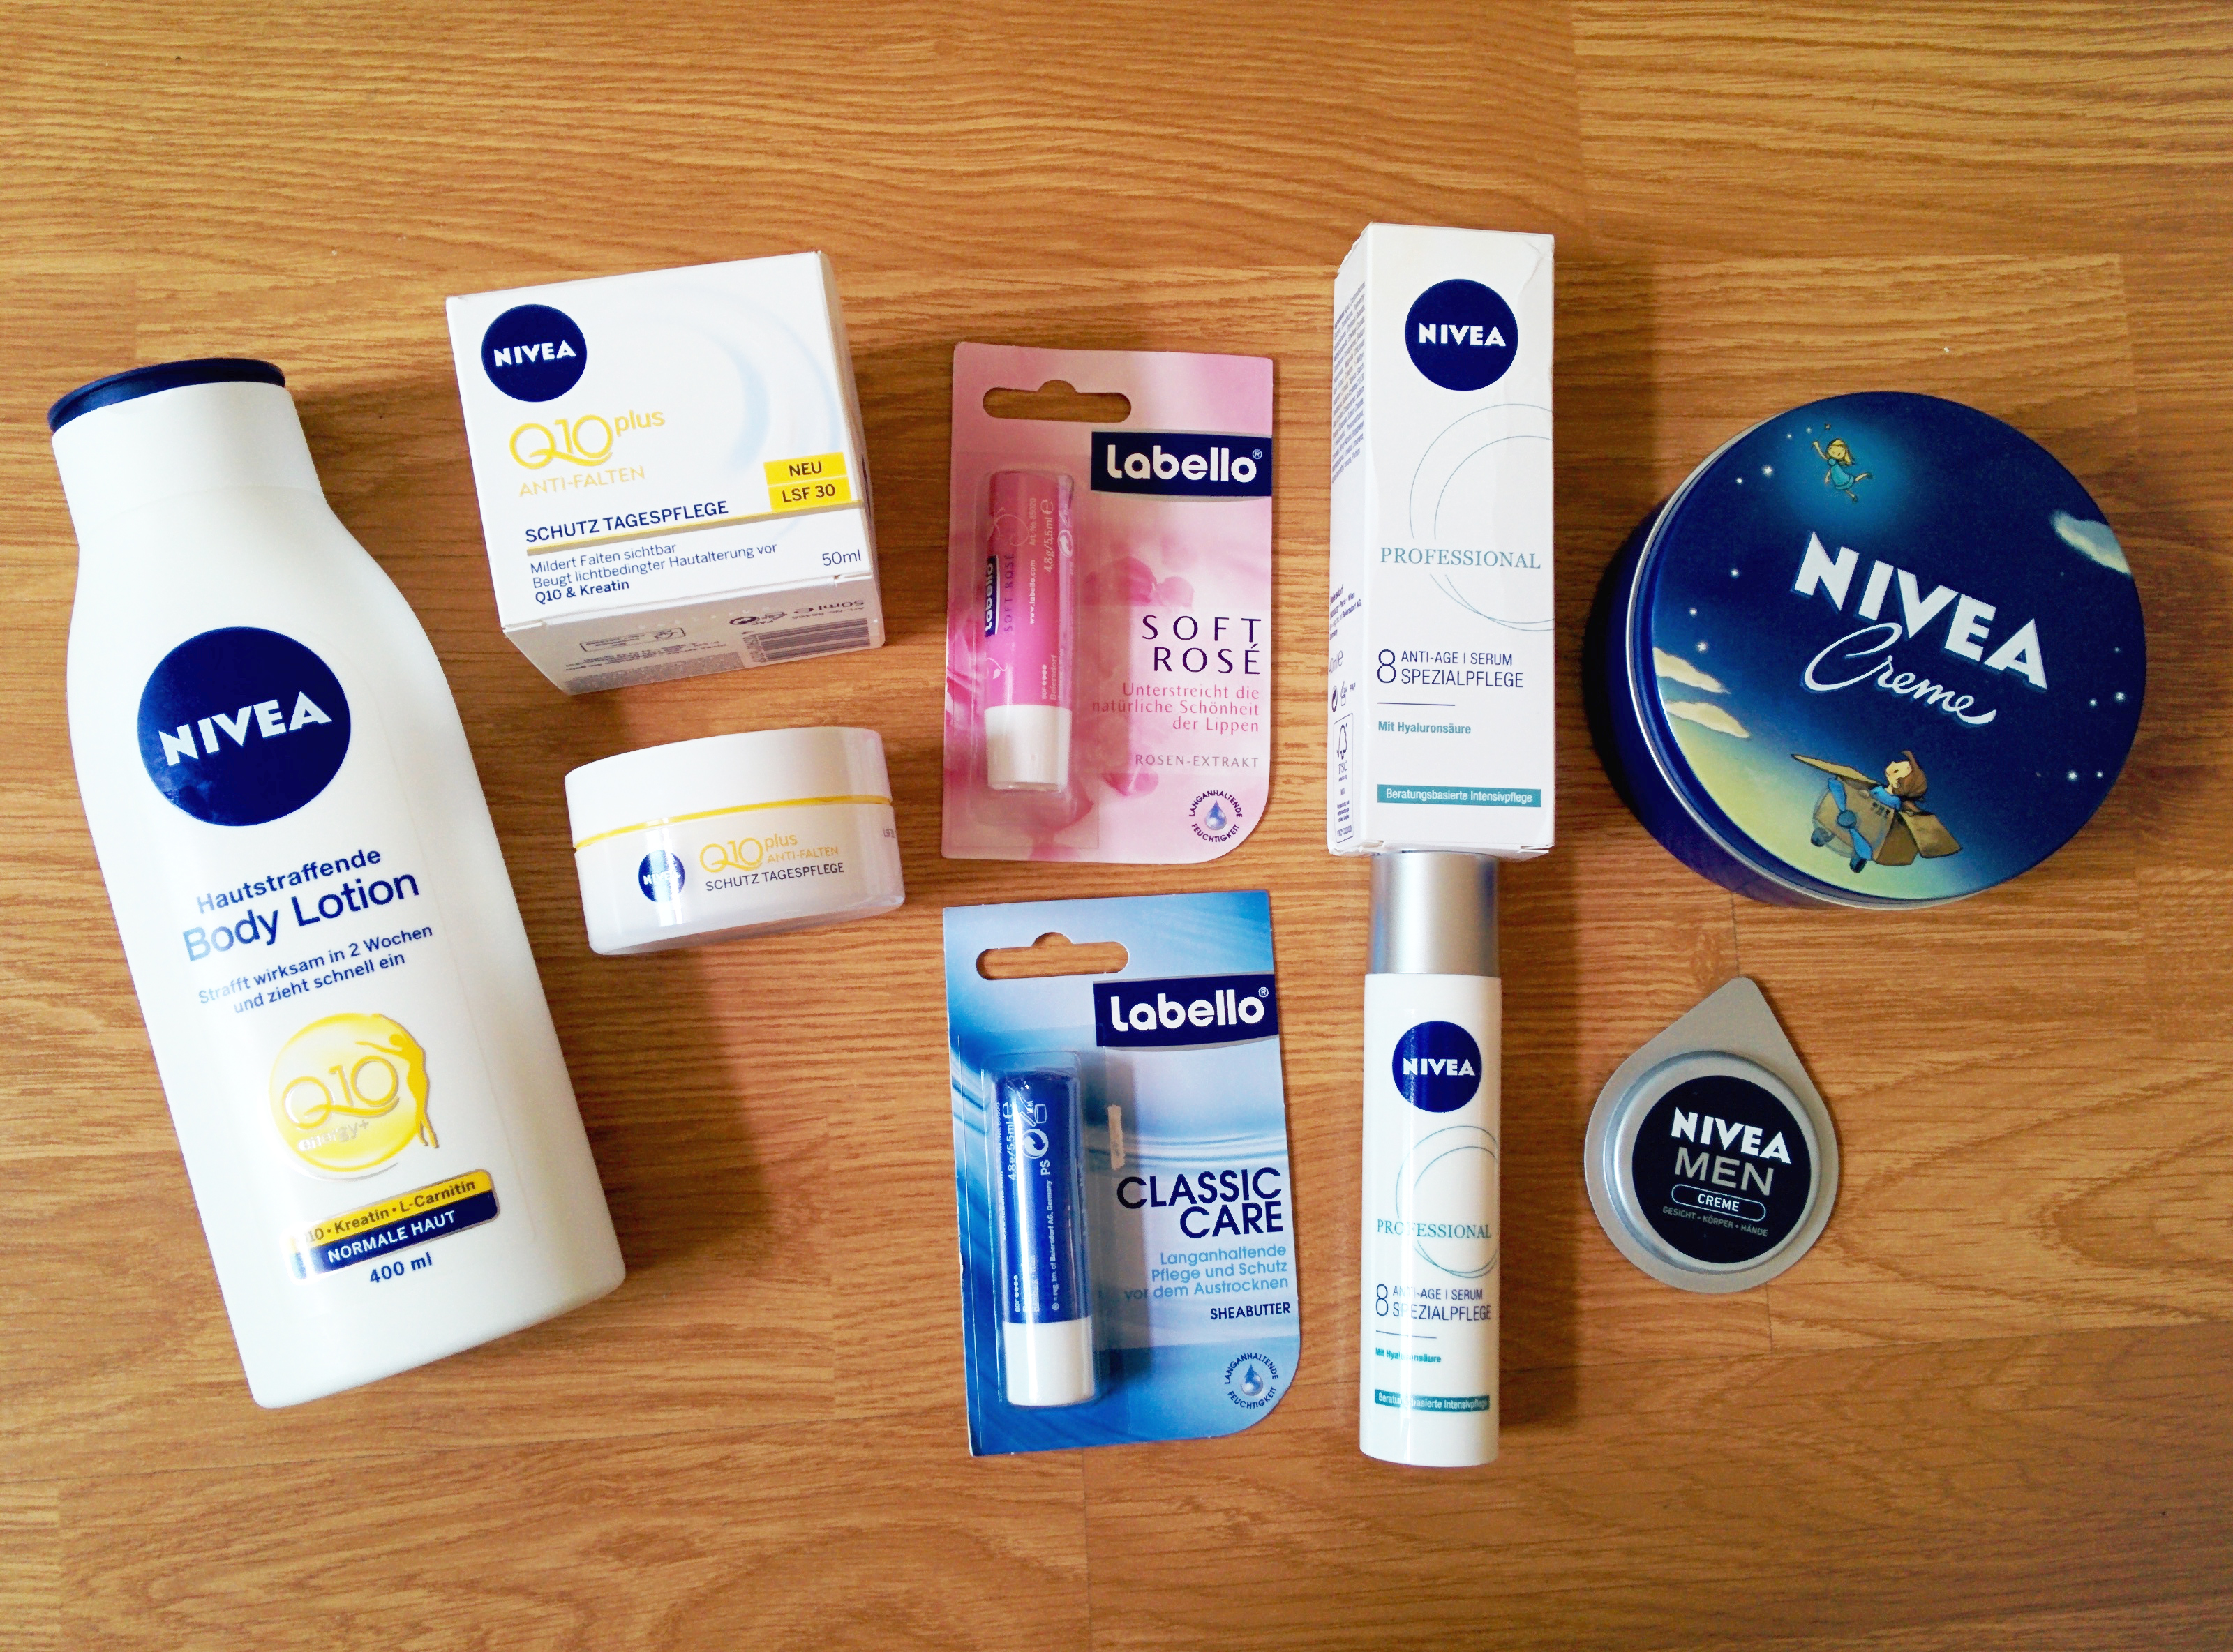 Nivea products